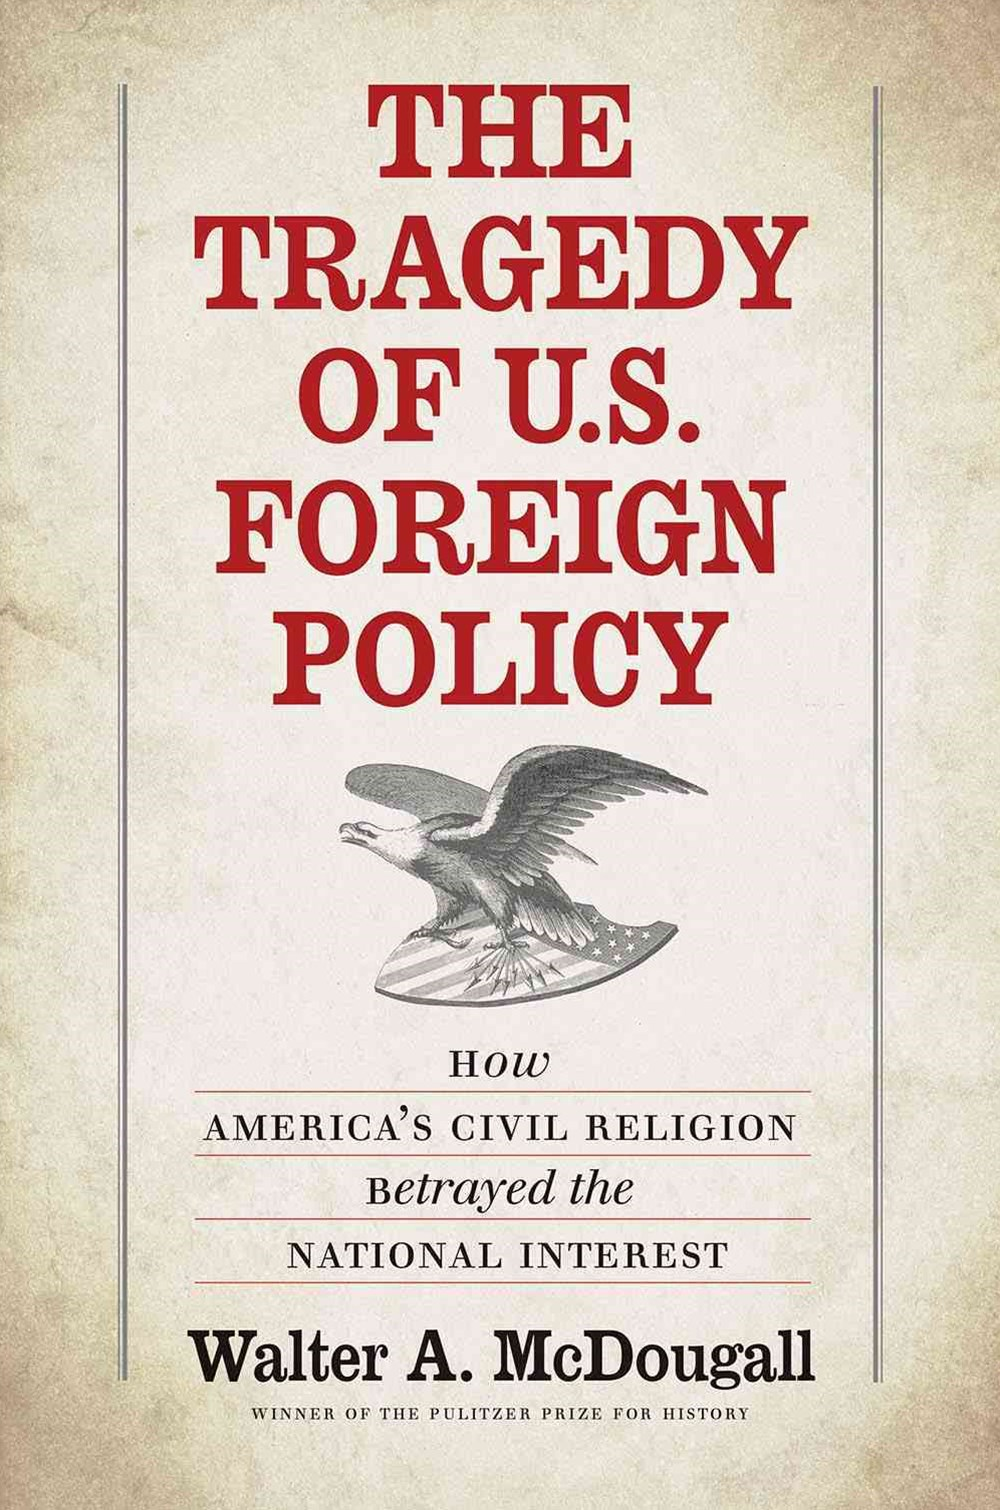 Tragedy of U.S. Foreign Policy